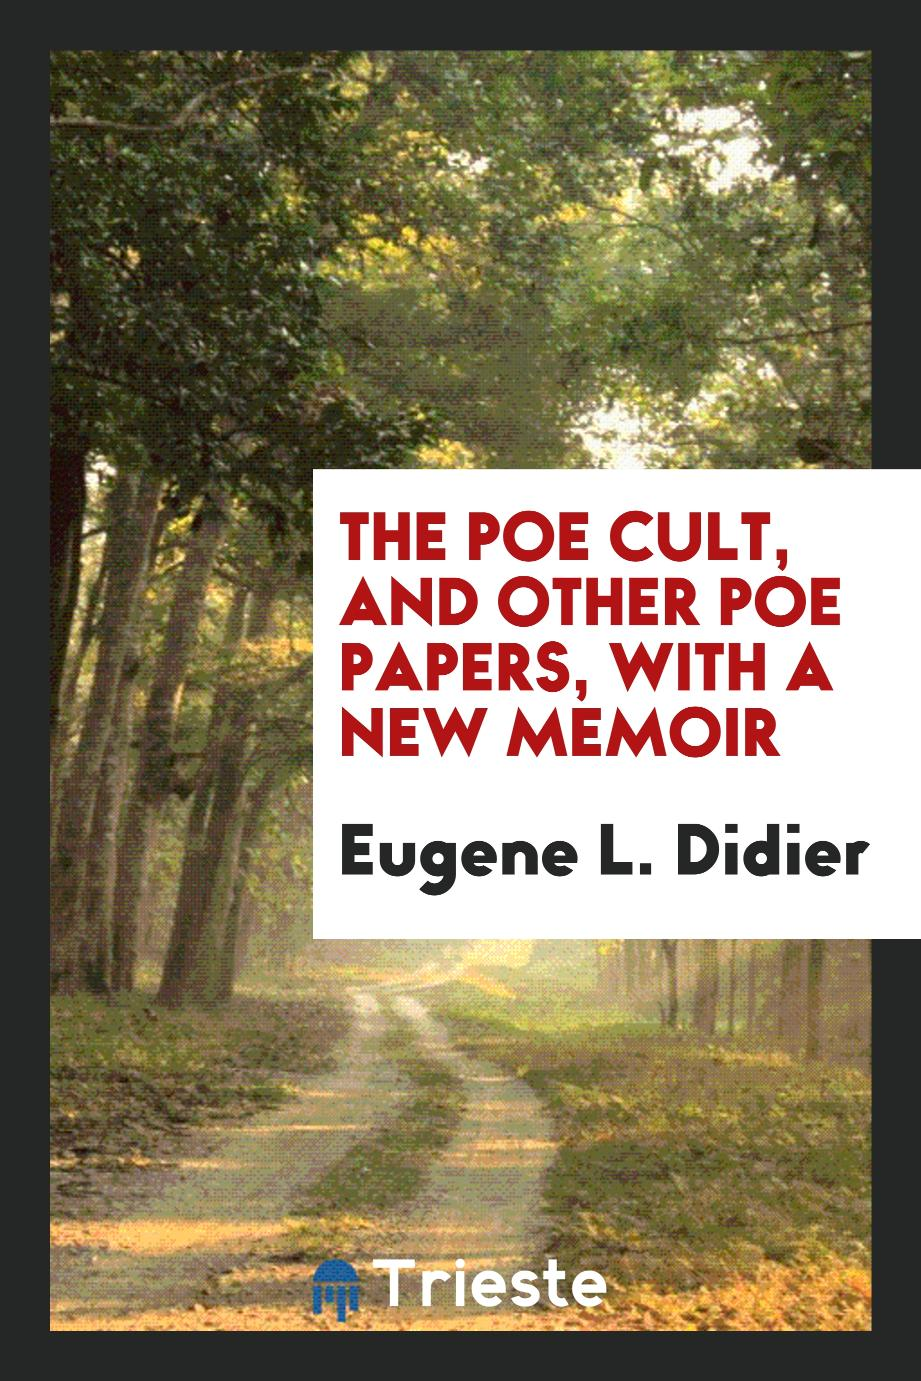 The Poe Cult, and Other Poe Papers, with a New Memoir